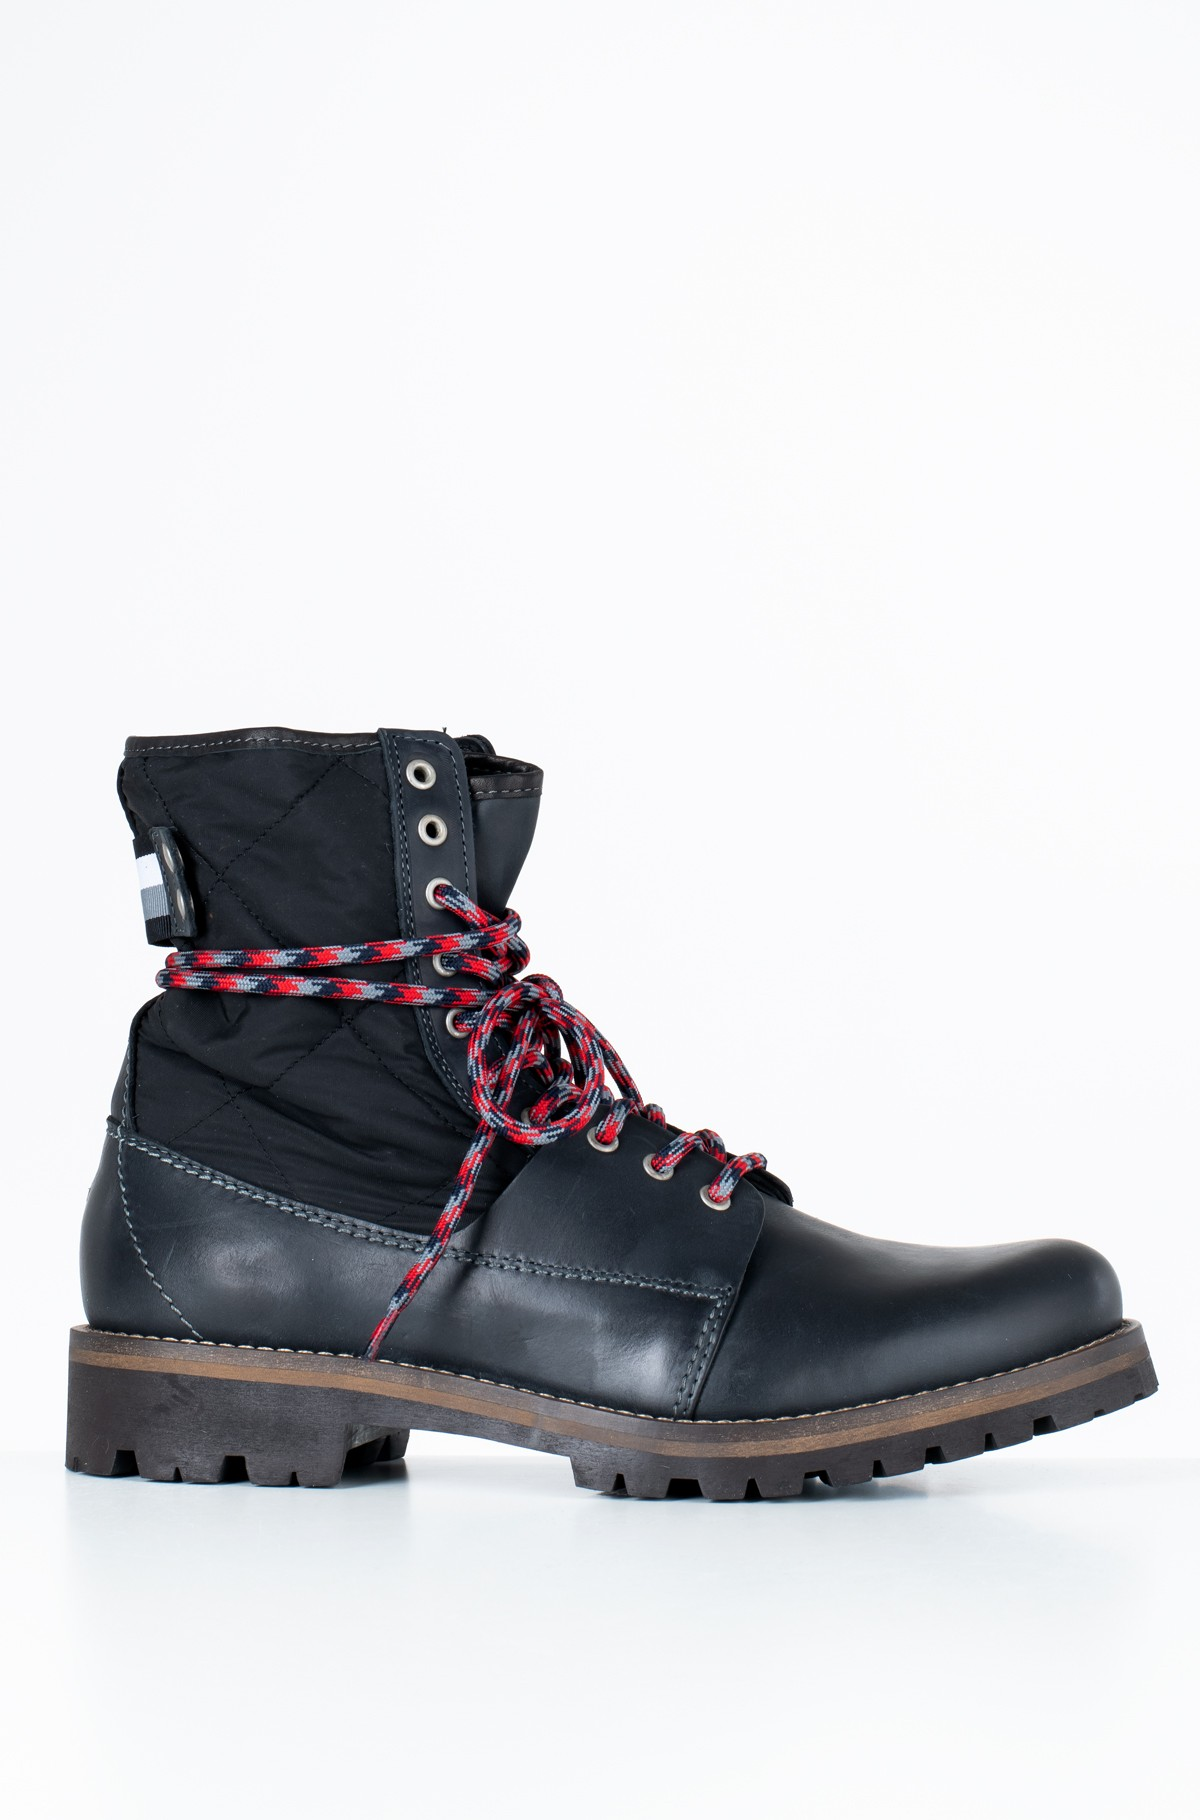 Zābaki HIGH MATERIAL MIX WINTER BOOT-full-1